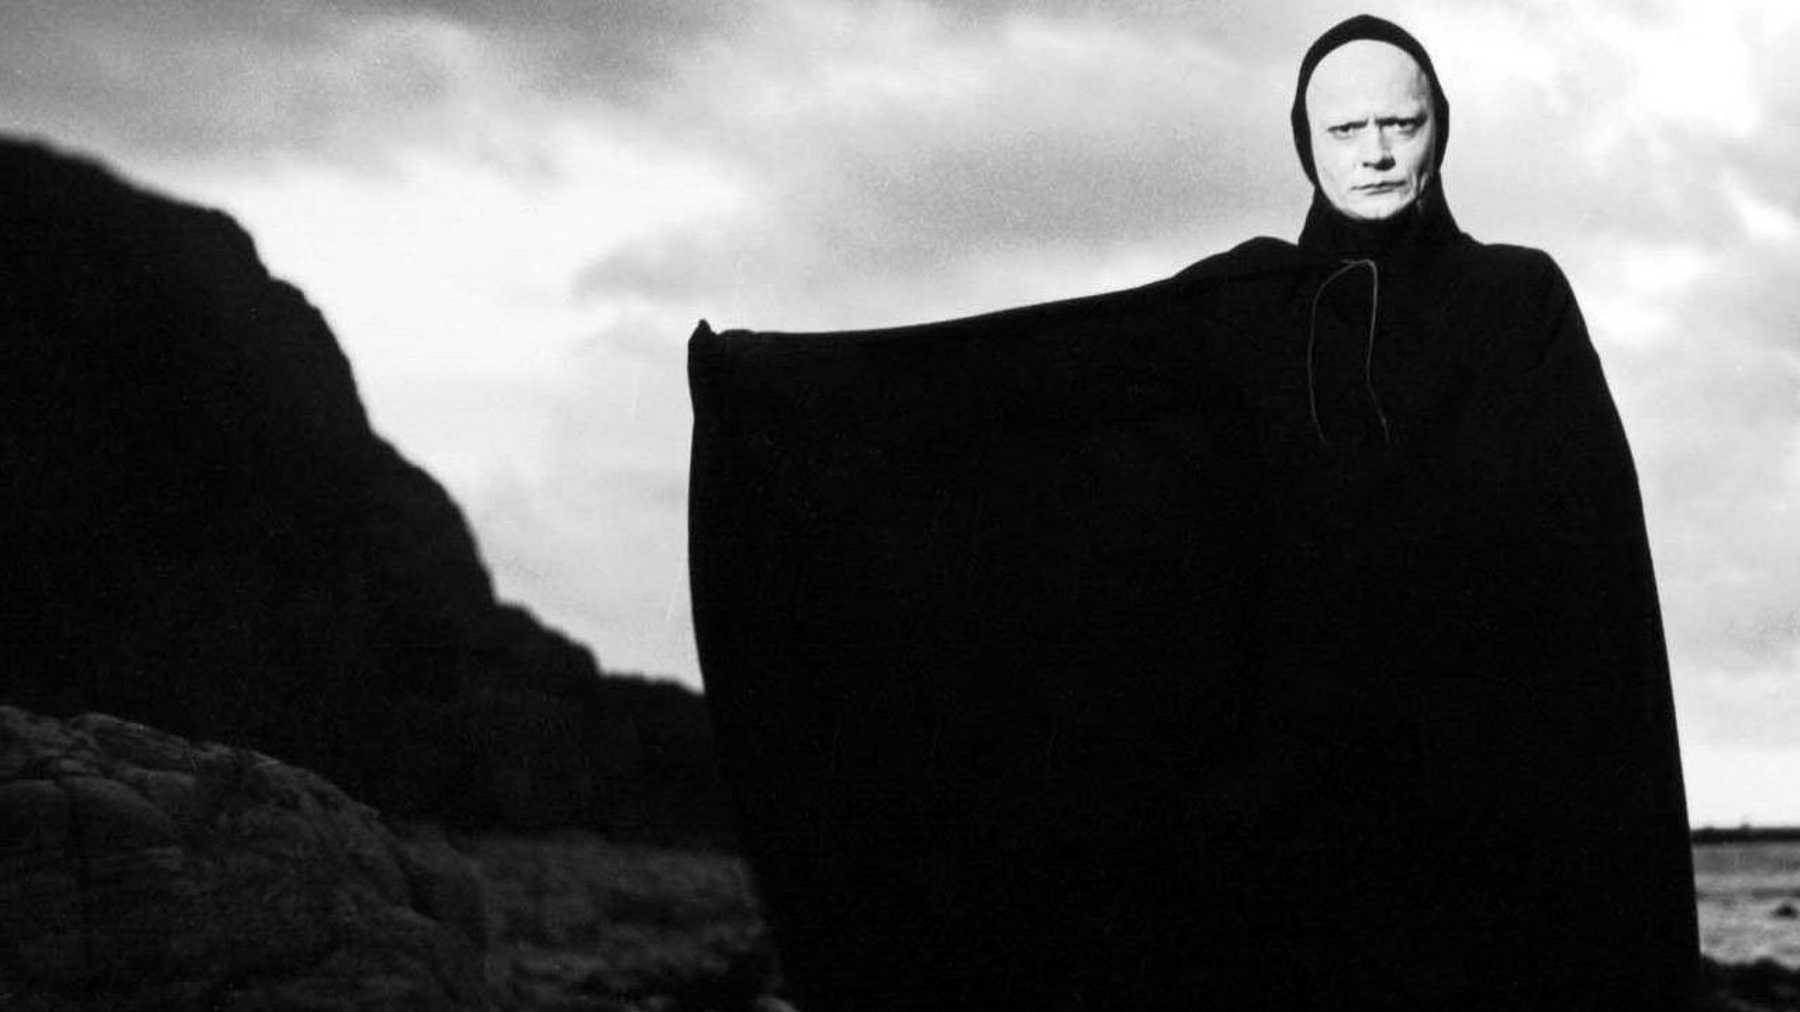 man in a black cape with a white face in front of rocky beach